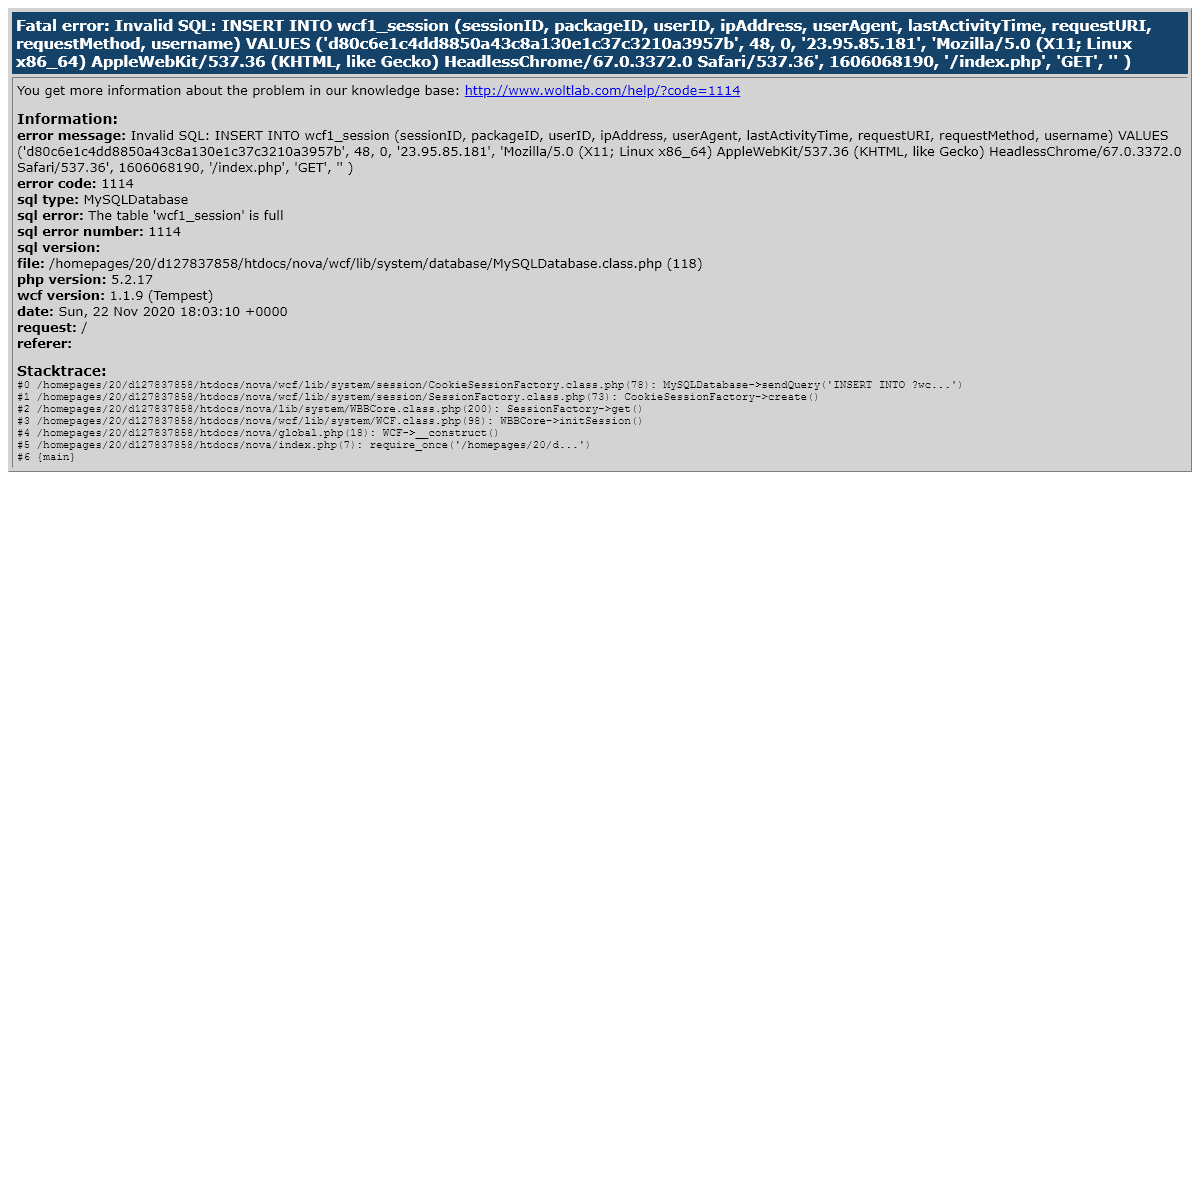 Fatal error- Invalid SQL- INSERT INTO wcf1_session (sessionID, packageID, userID, ipAddress, userAgent, lastActivityTime, reques